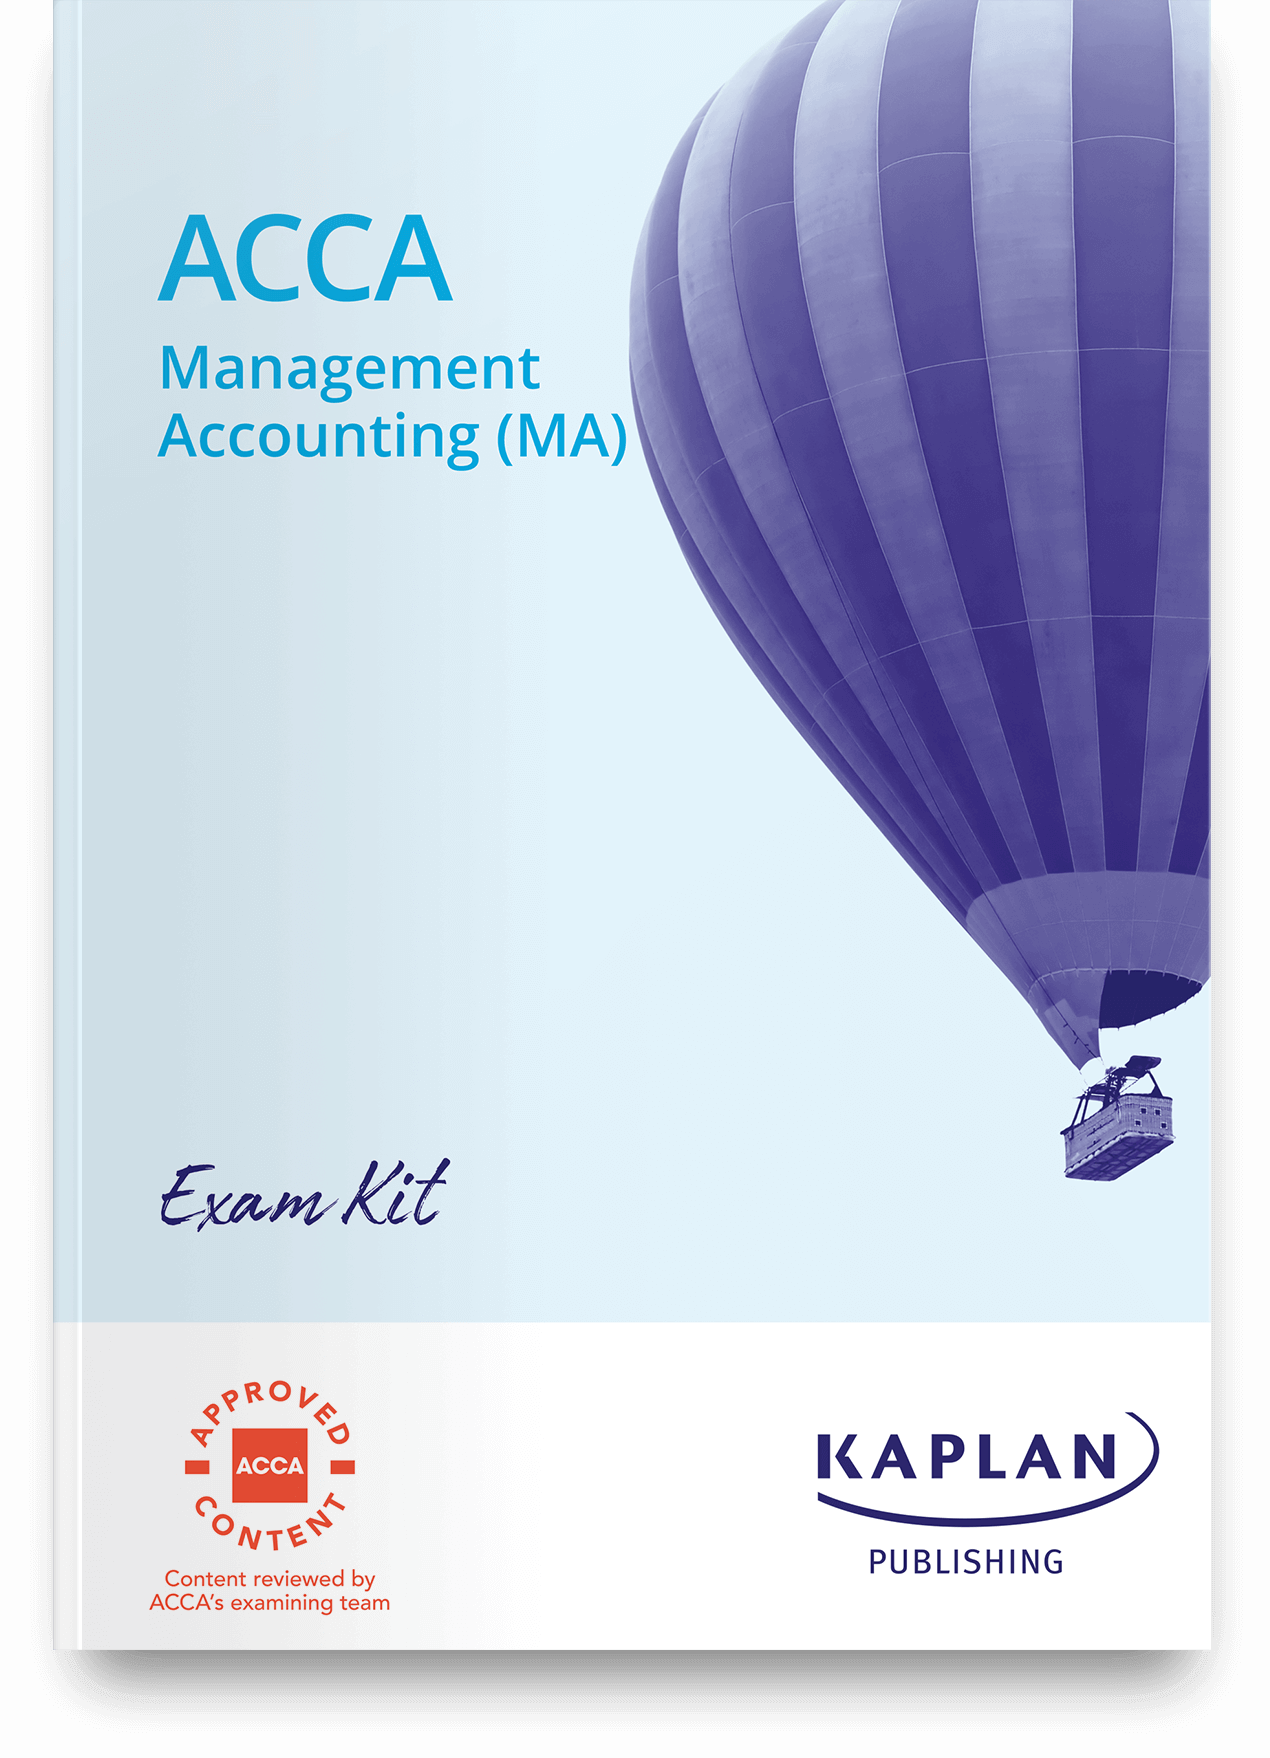 ACCA Management Accounting (MA) Exam Kit